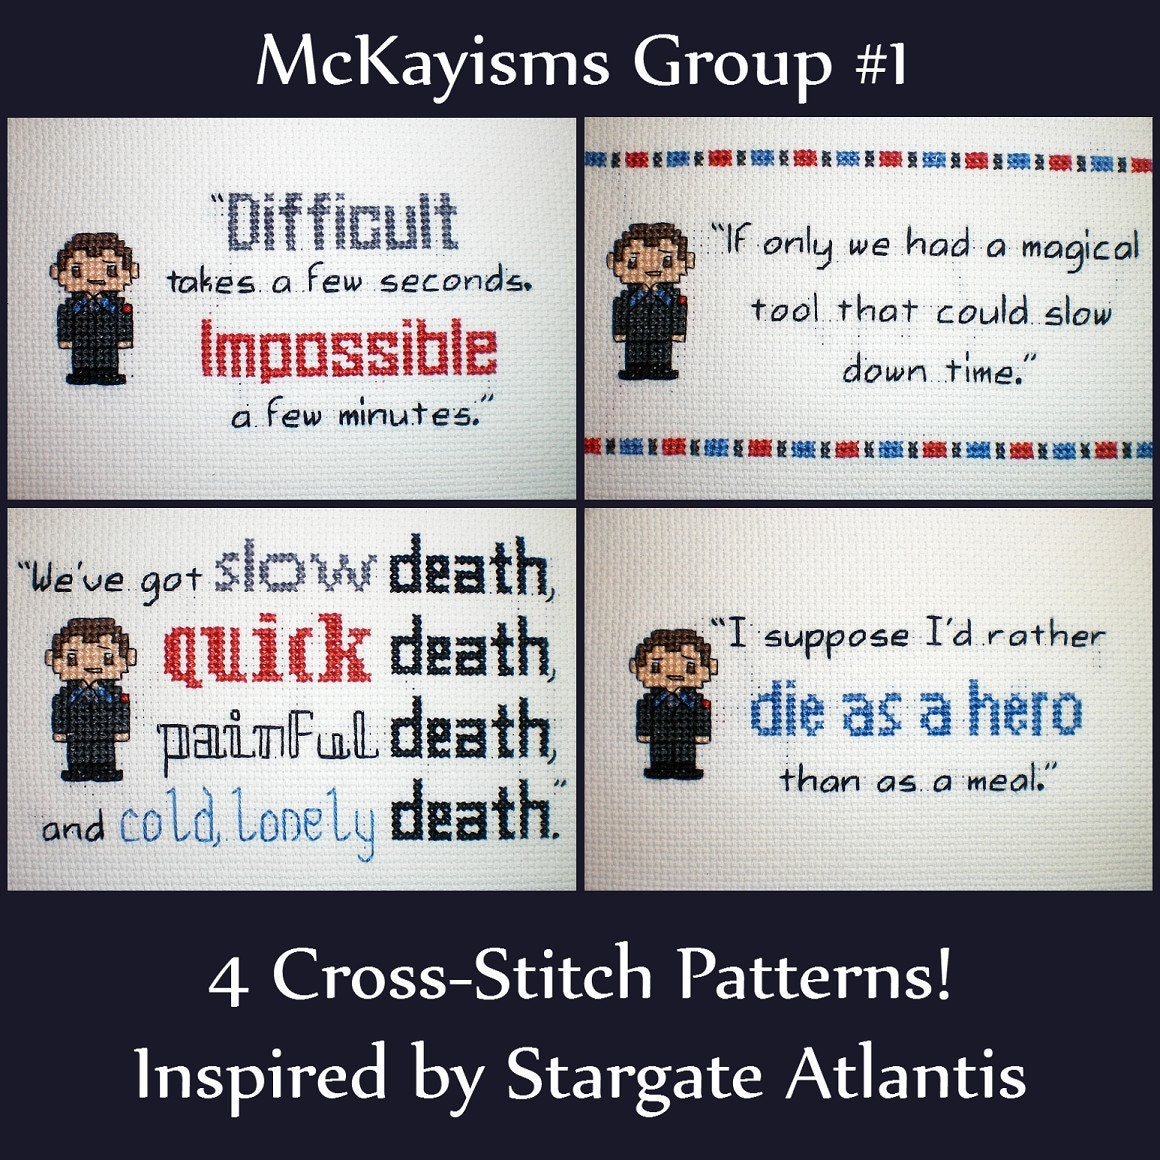 McKayisms Group 1 - Stargate Atlantis Inspired Cross-stitch Pattern